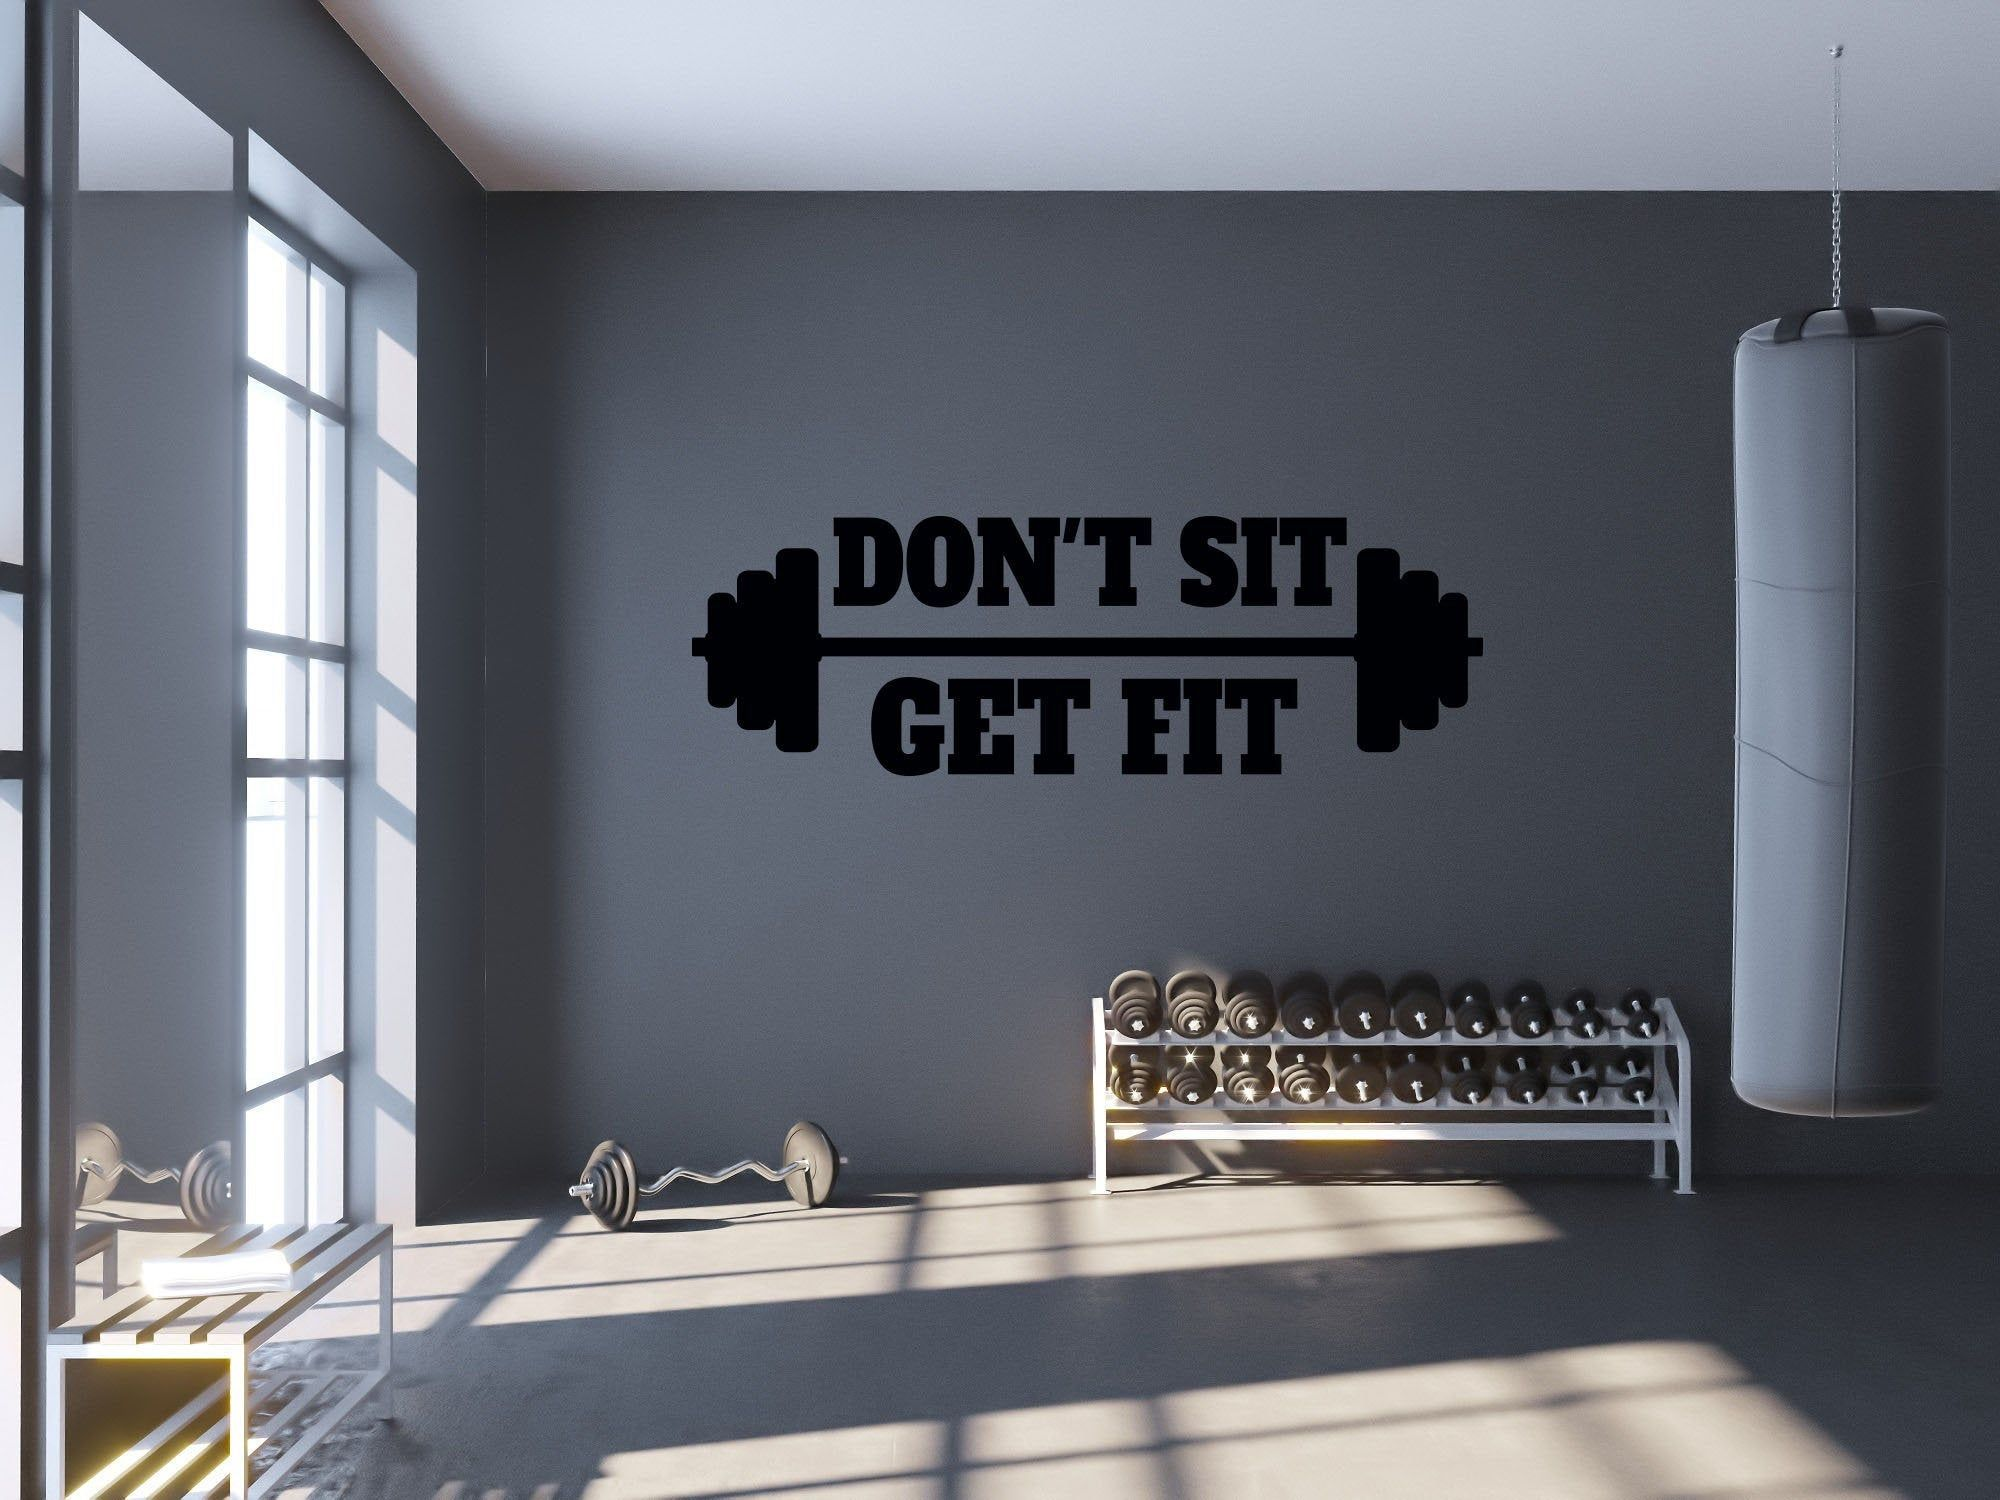 Gym Wall Decal Don T Sit Get Fit Workout Quote Wall Etsy Gym Wall Decor Gym Wall Decal Gym Room At Home